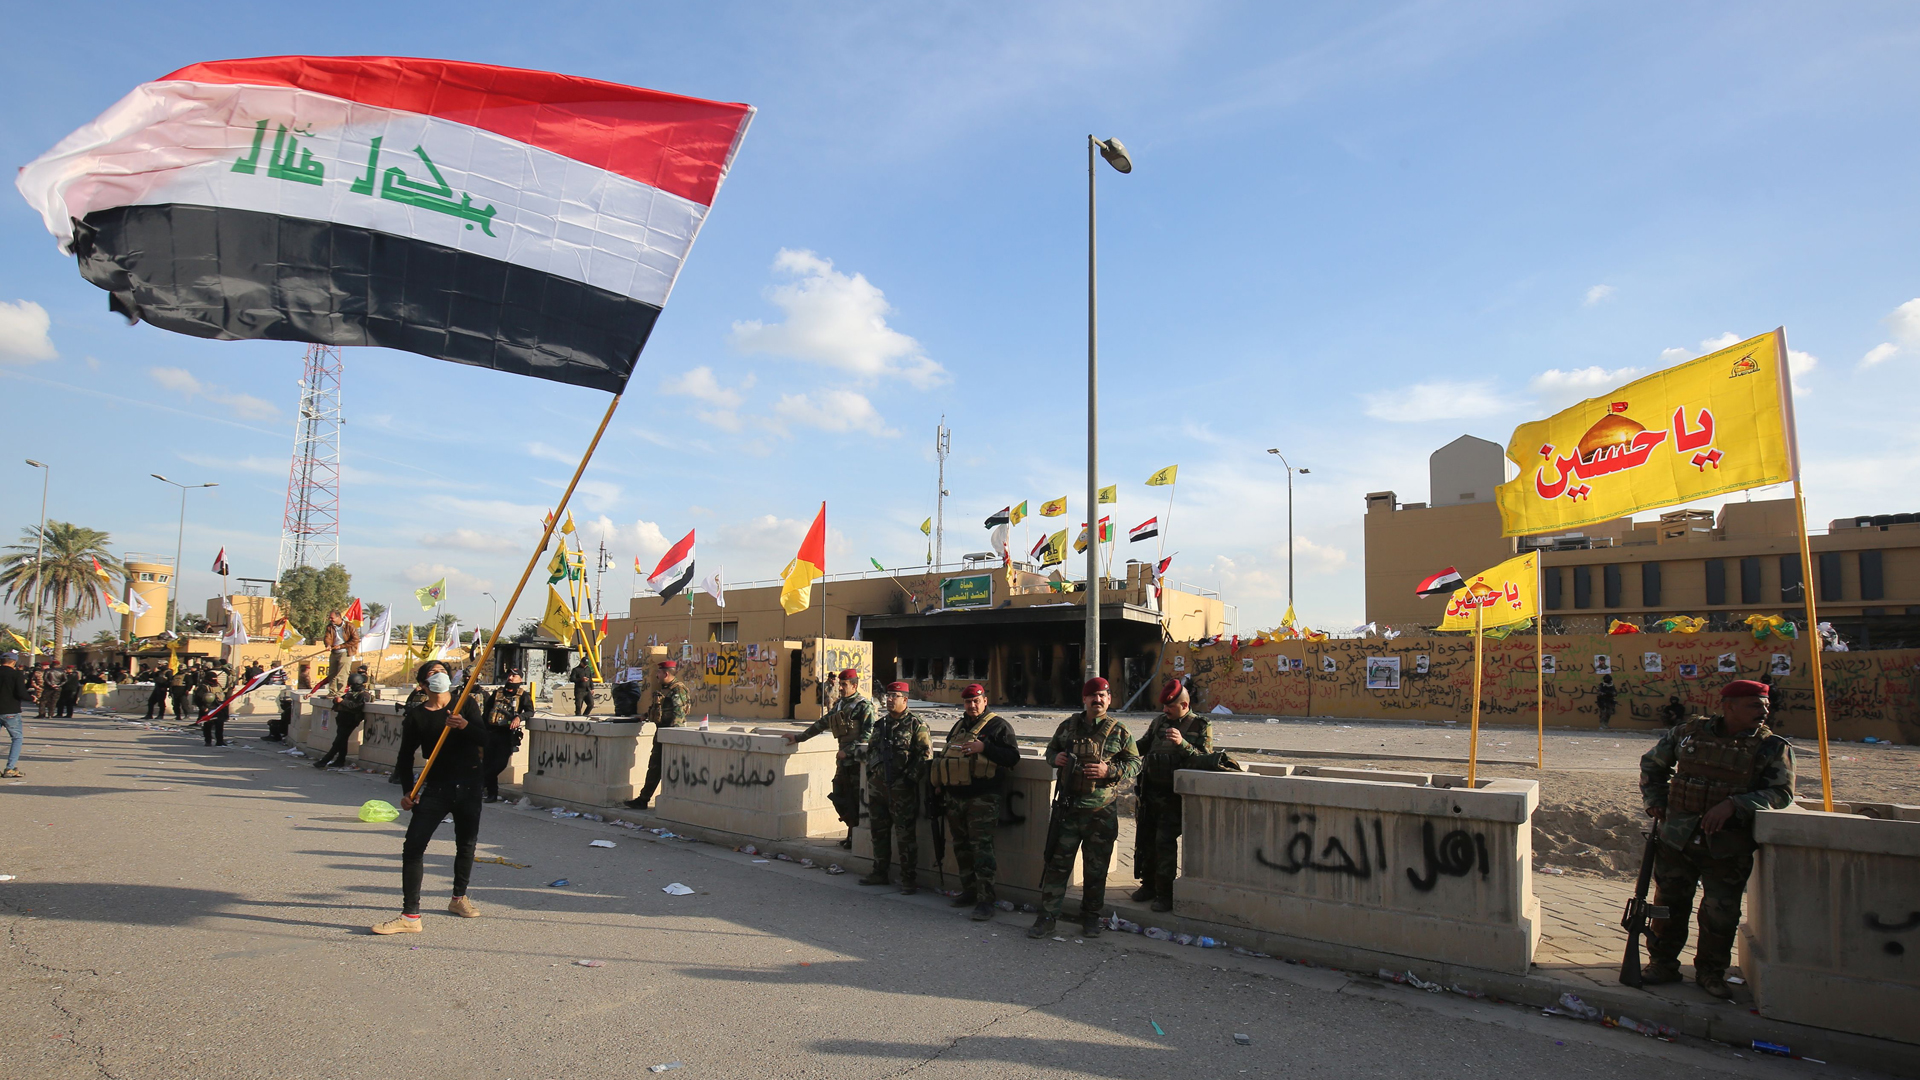 Iraqi security forces are deployed in front of the US embassy in the capital Baghdad, after an order from the Hashed al-Shaabi paramilitary force to supporters to leave the compound on January 1, 2020. (Credit: Ahmad Al-Runaye/AFP/Getty Images)